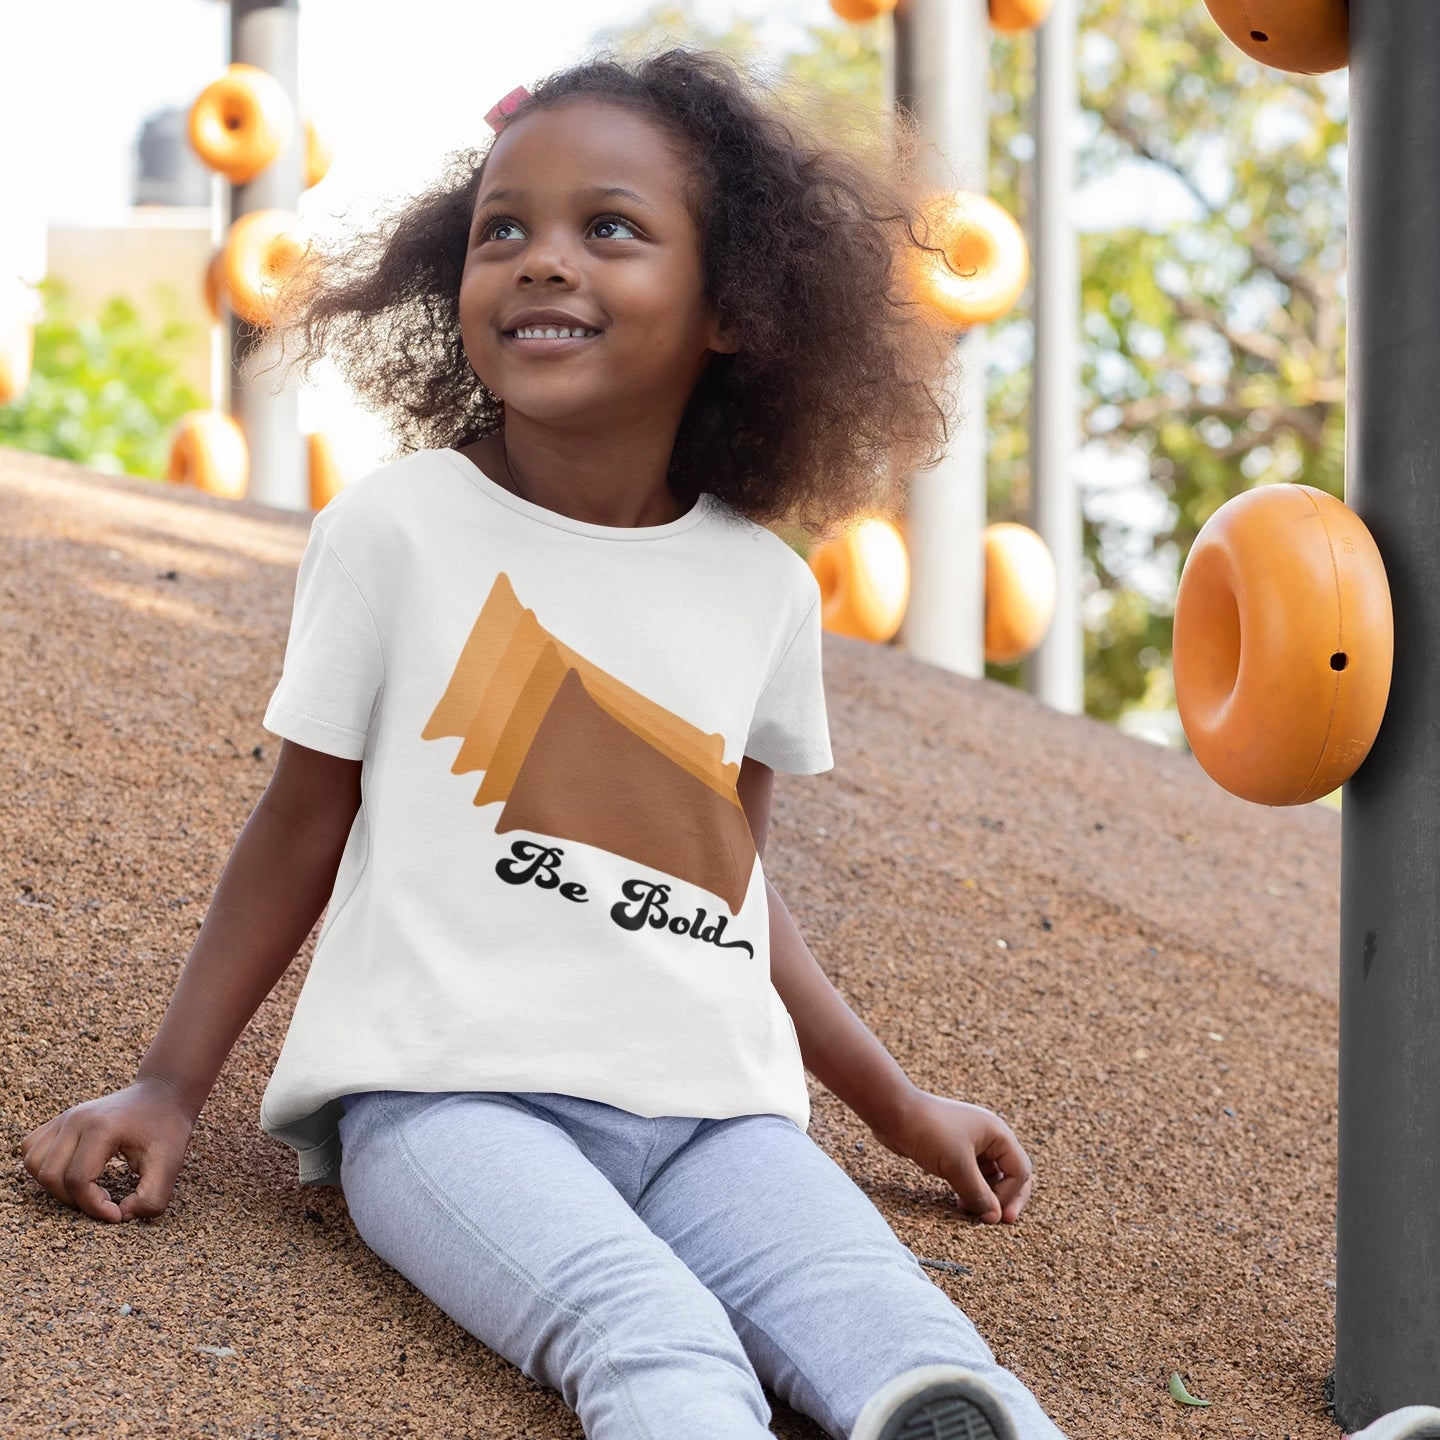 toddler wearing a white tee shirt with brown rectangles and the words be bold on it